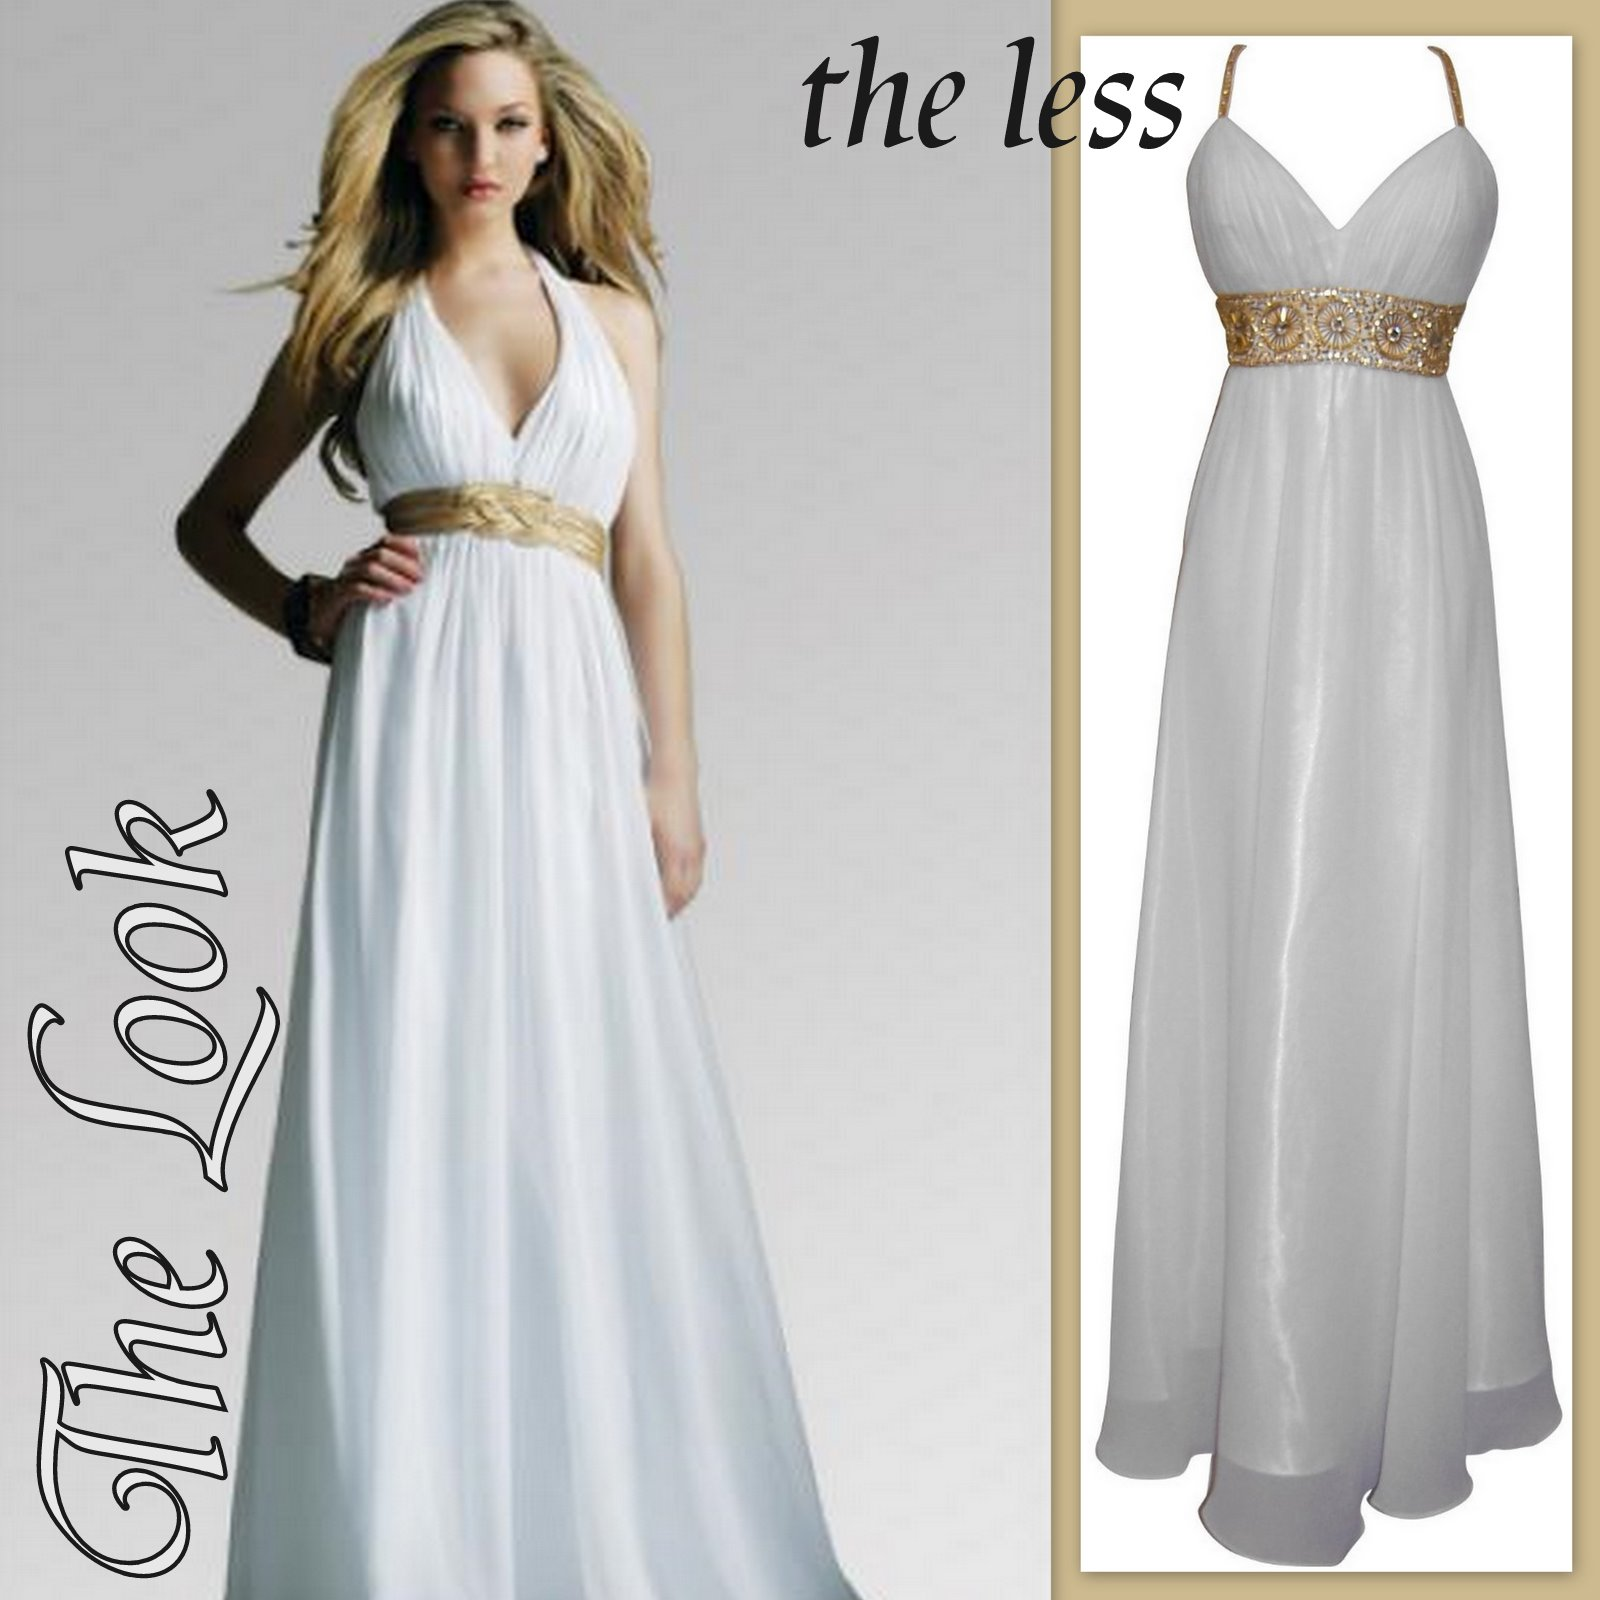 wedding dresses like a goddess greek goddess wedding dress Wedding Dresses Like A Goddess 88